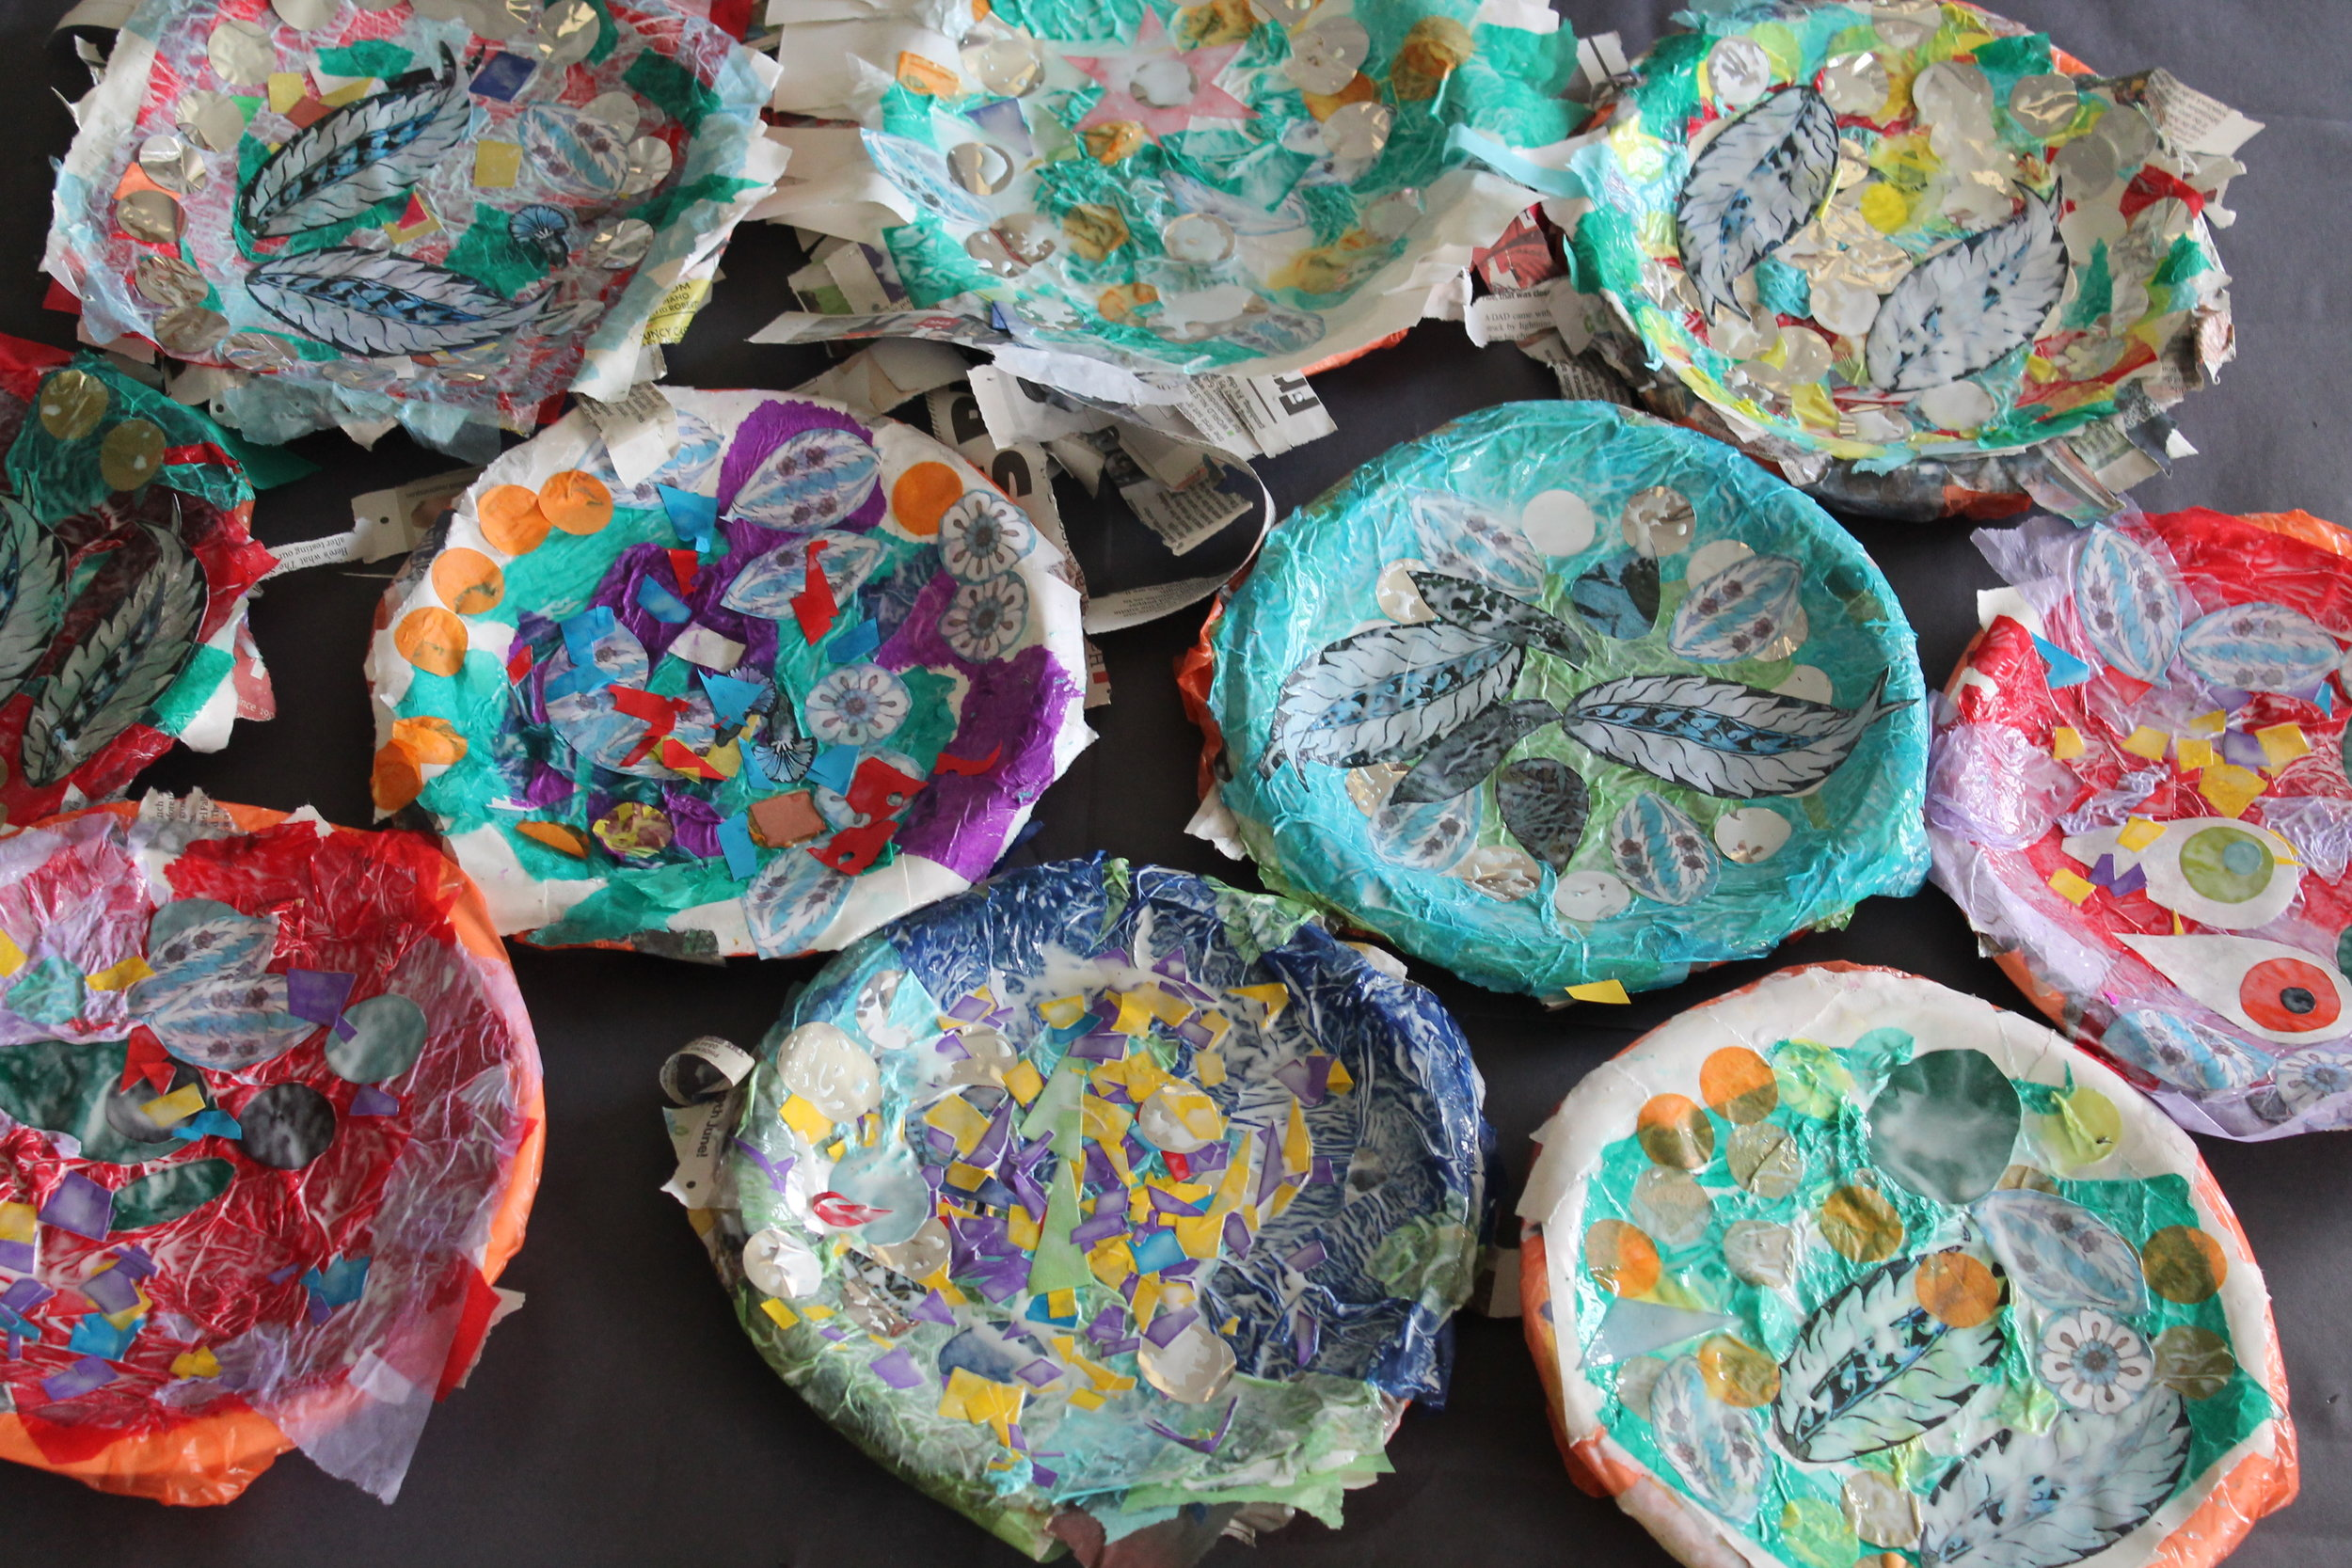 Patterned plates - William De Morgan Persian influenced colours paper mached into a plate.